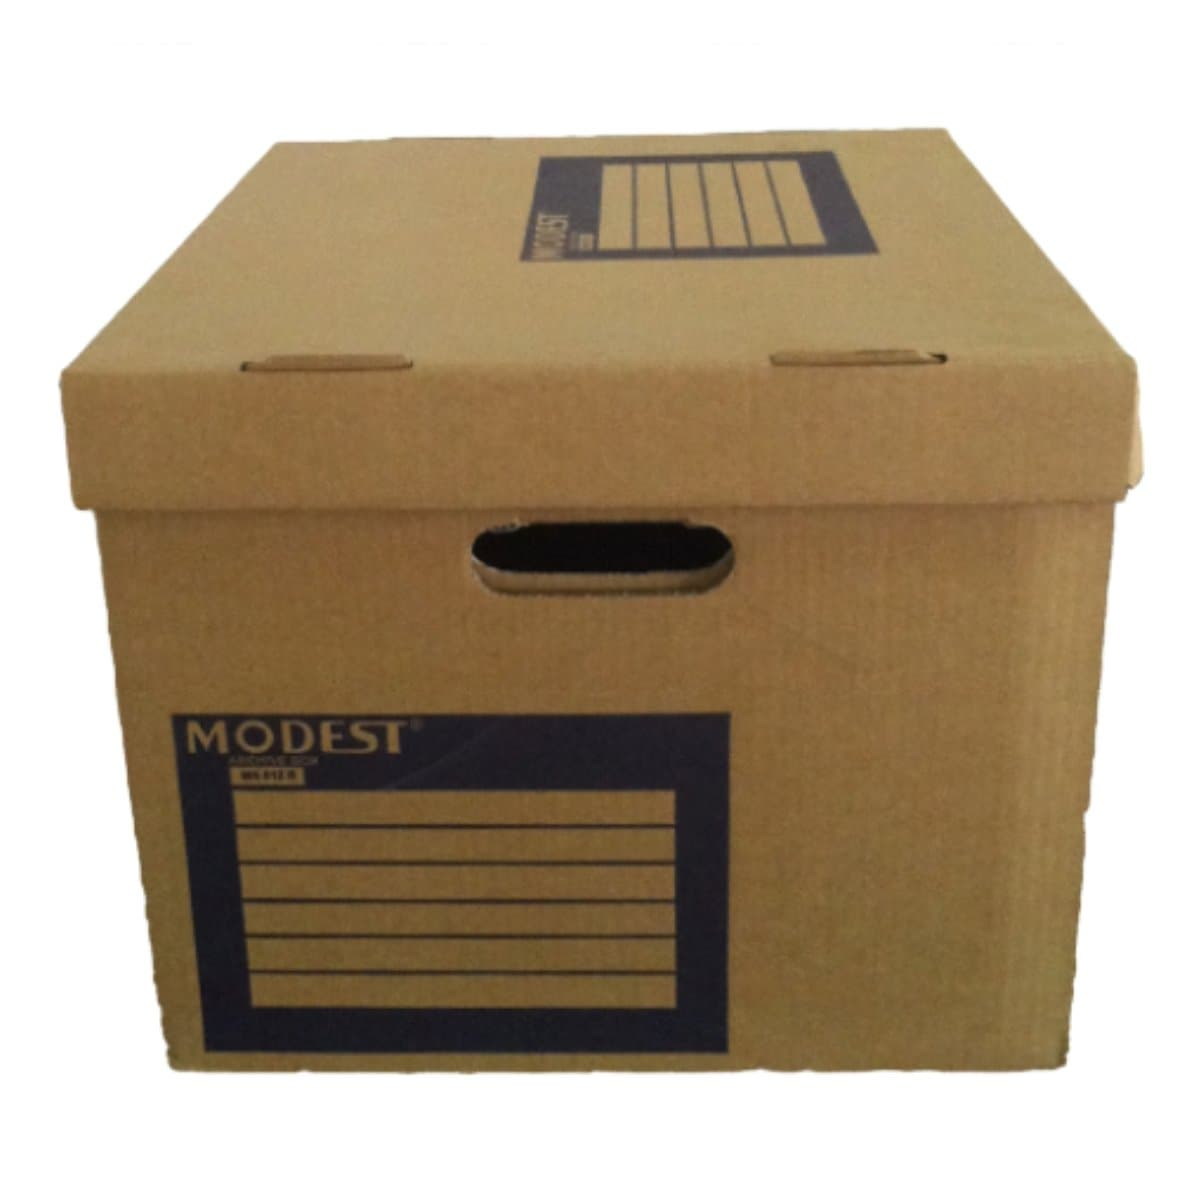 Modest Storage Box 407x366xH293mm, Brown